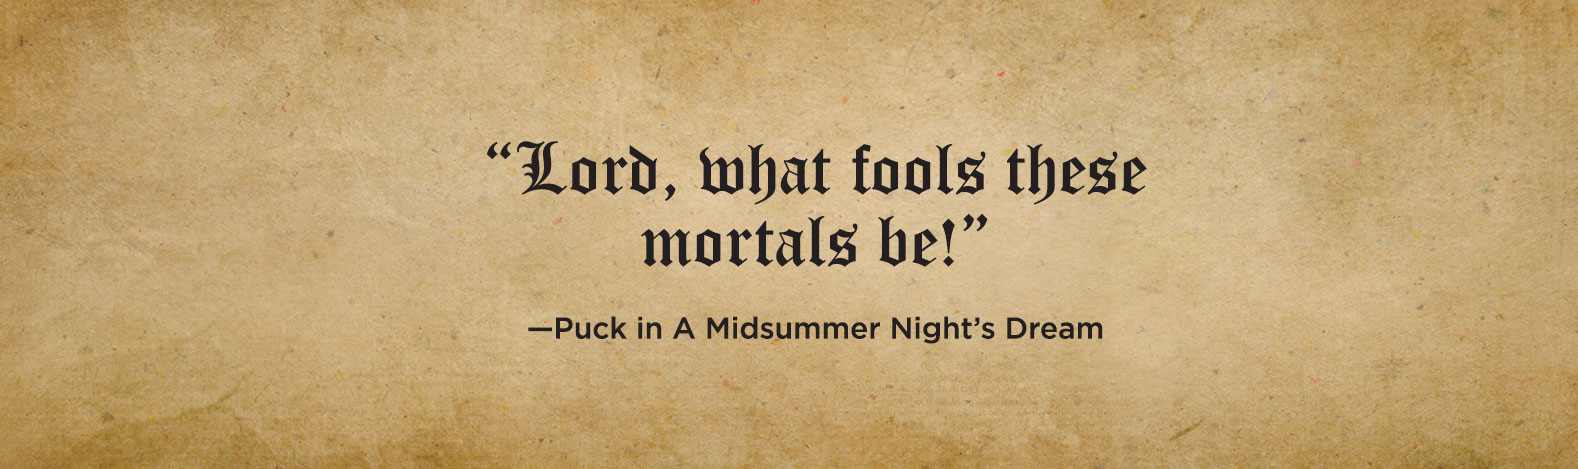 Puck-Then-Movers and Shakespeare—Shakespeare and Business.jpg